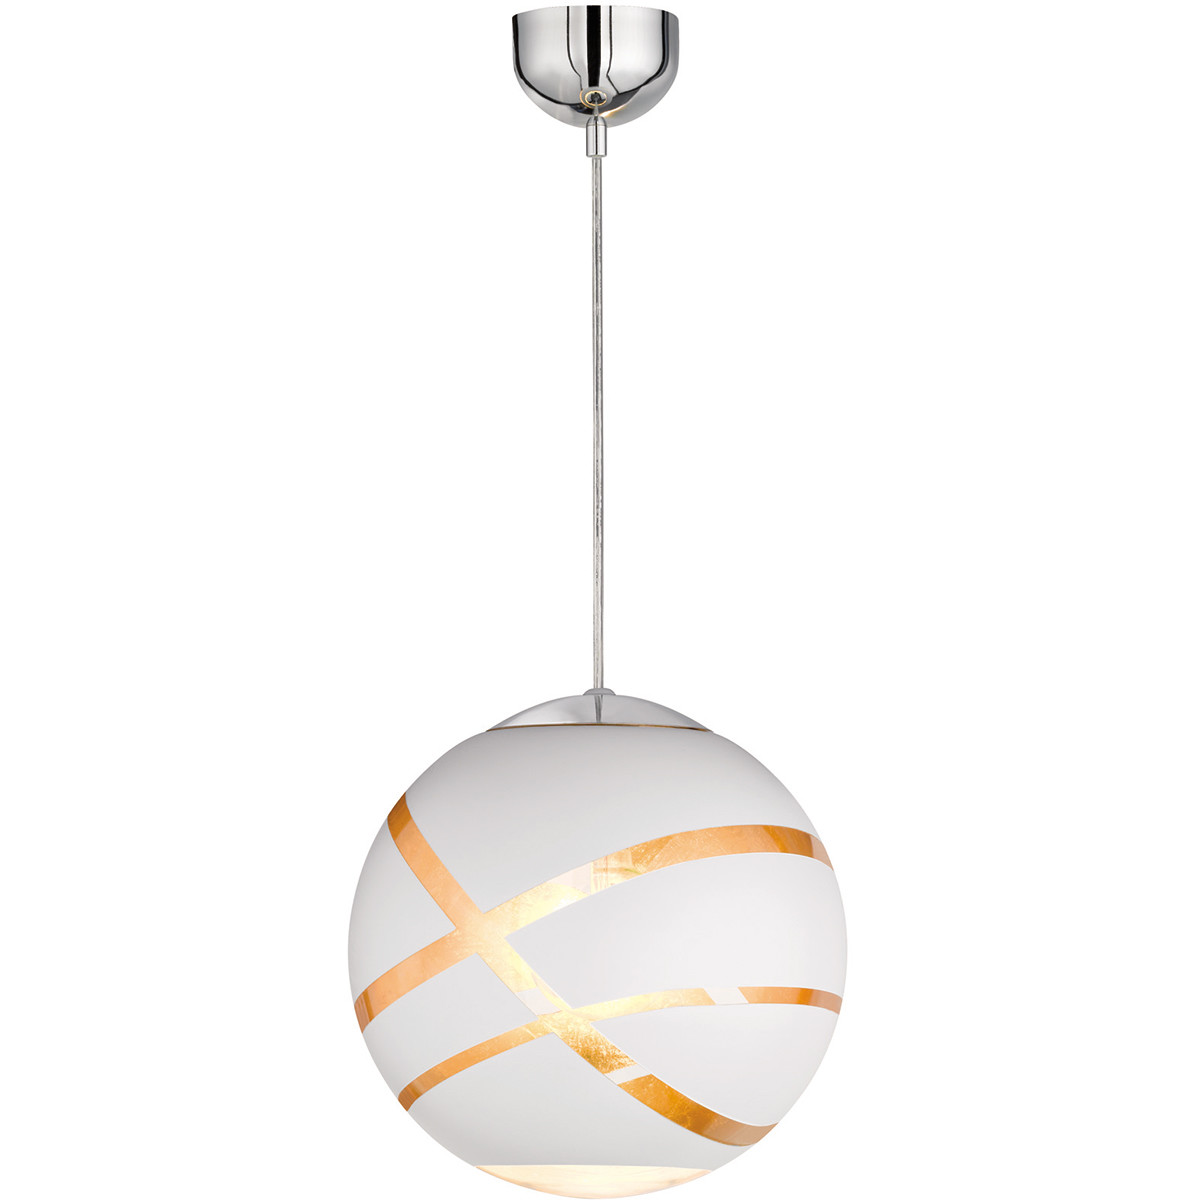 LED Hanglamp - Hangverlichting - Trion Fary - E27 Fitting - 1-lichts - Rond - Mat Wit - Glas